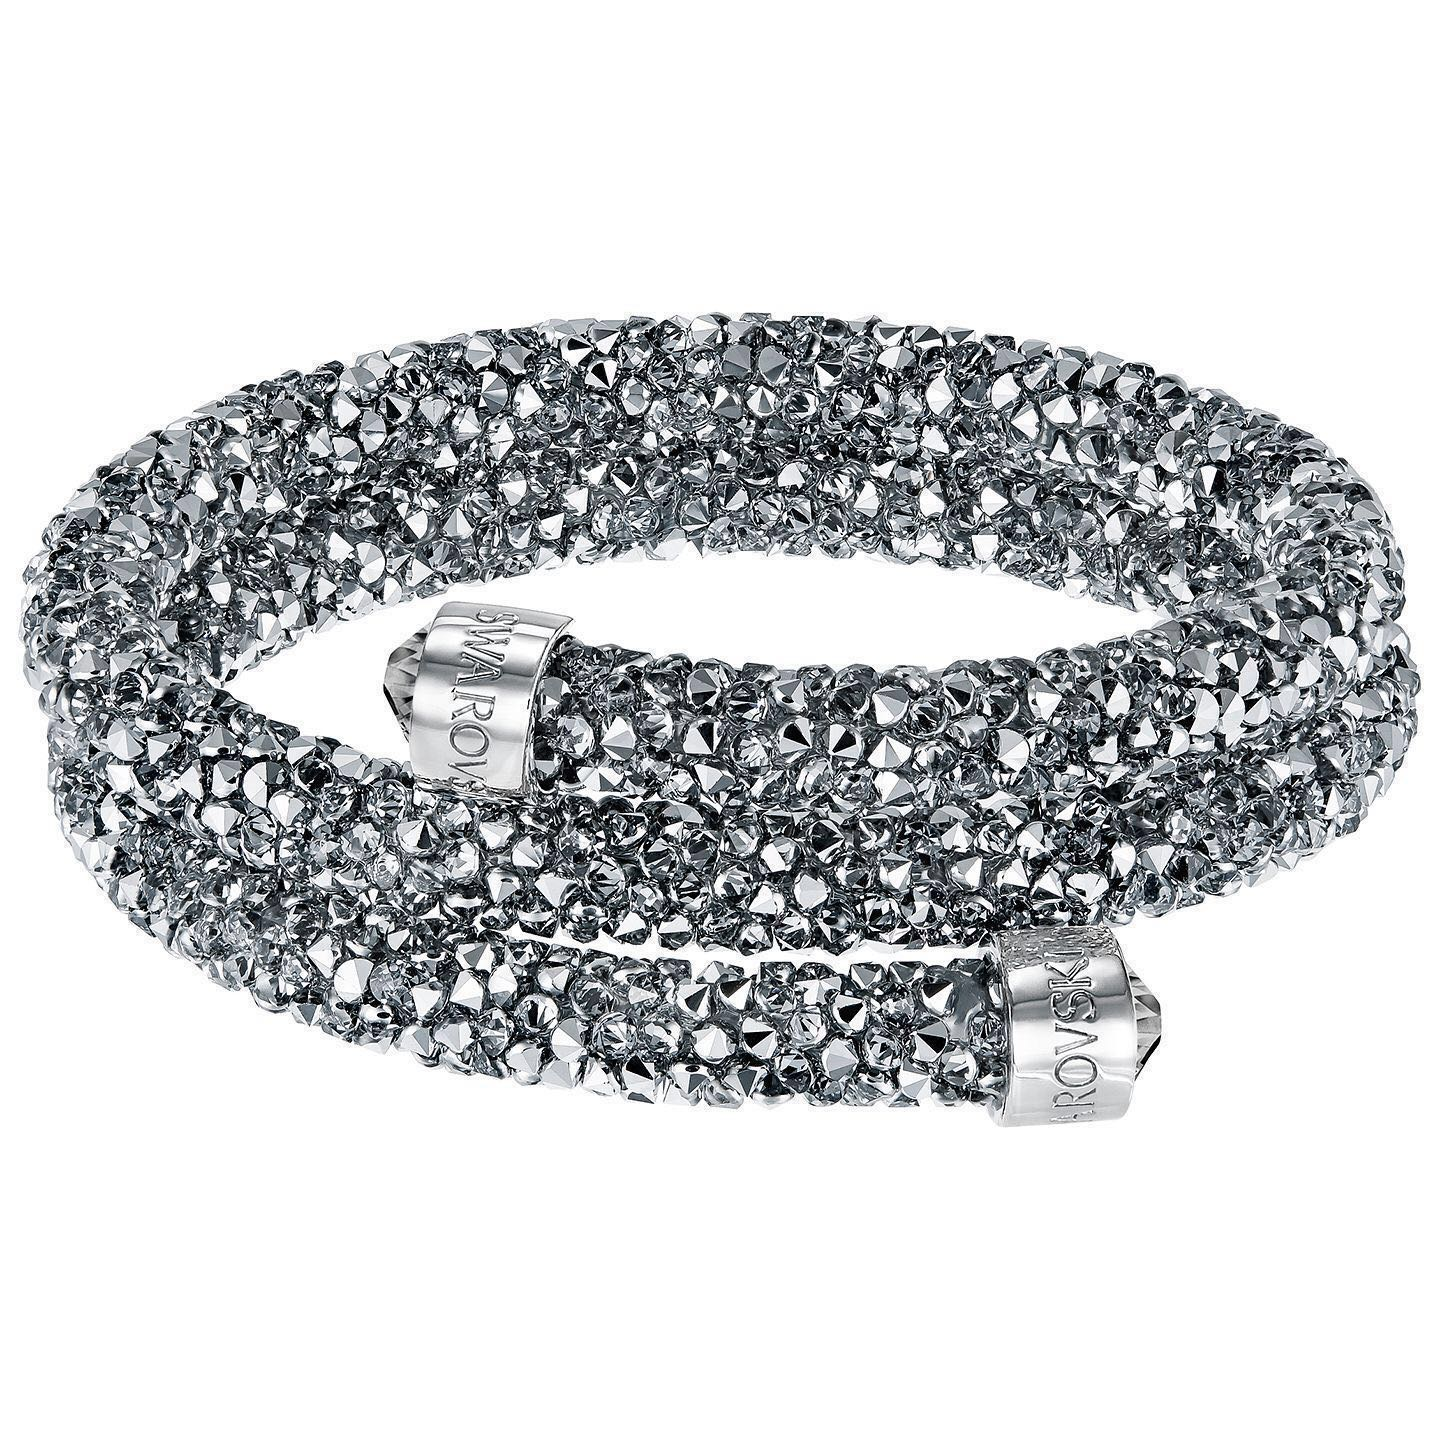 ee5e455a4 Swarovski Crystaldust Bangle (BN), Women's Fashion, Jewellery ...